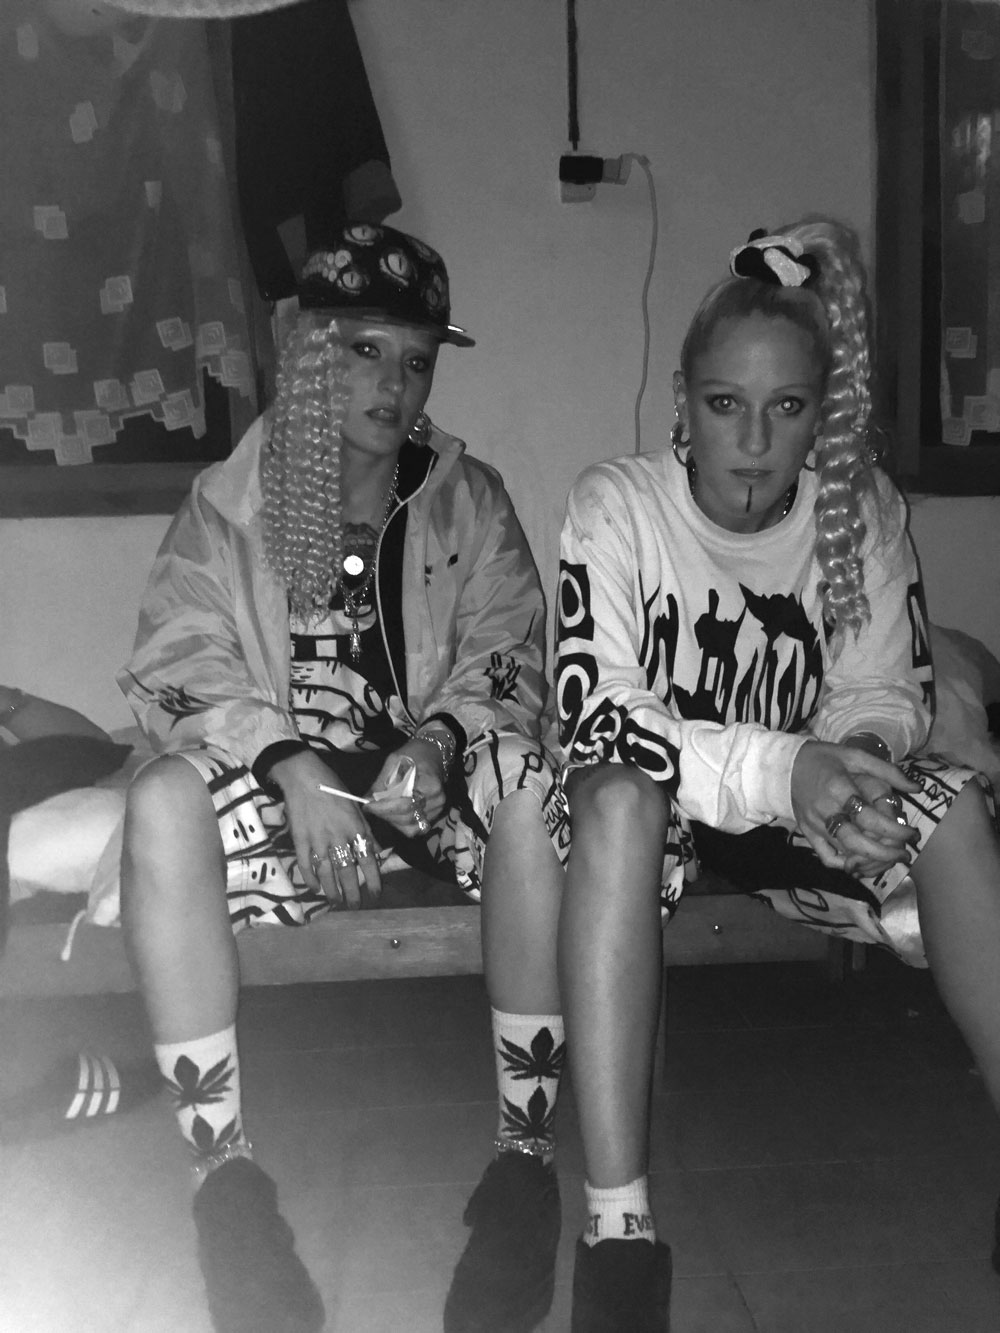 Us chilling in the acid techno bunkbed cabin at 3am before going on stage. Wearing our trusty Hyde Fast and The End Is Near get up (two of our fav designers ;)